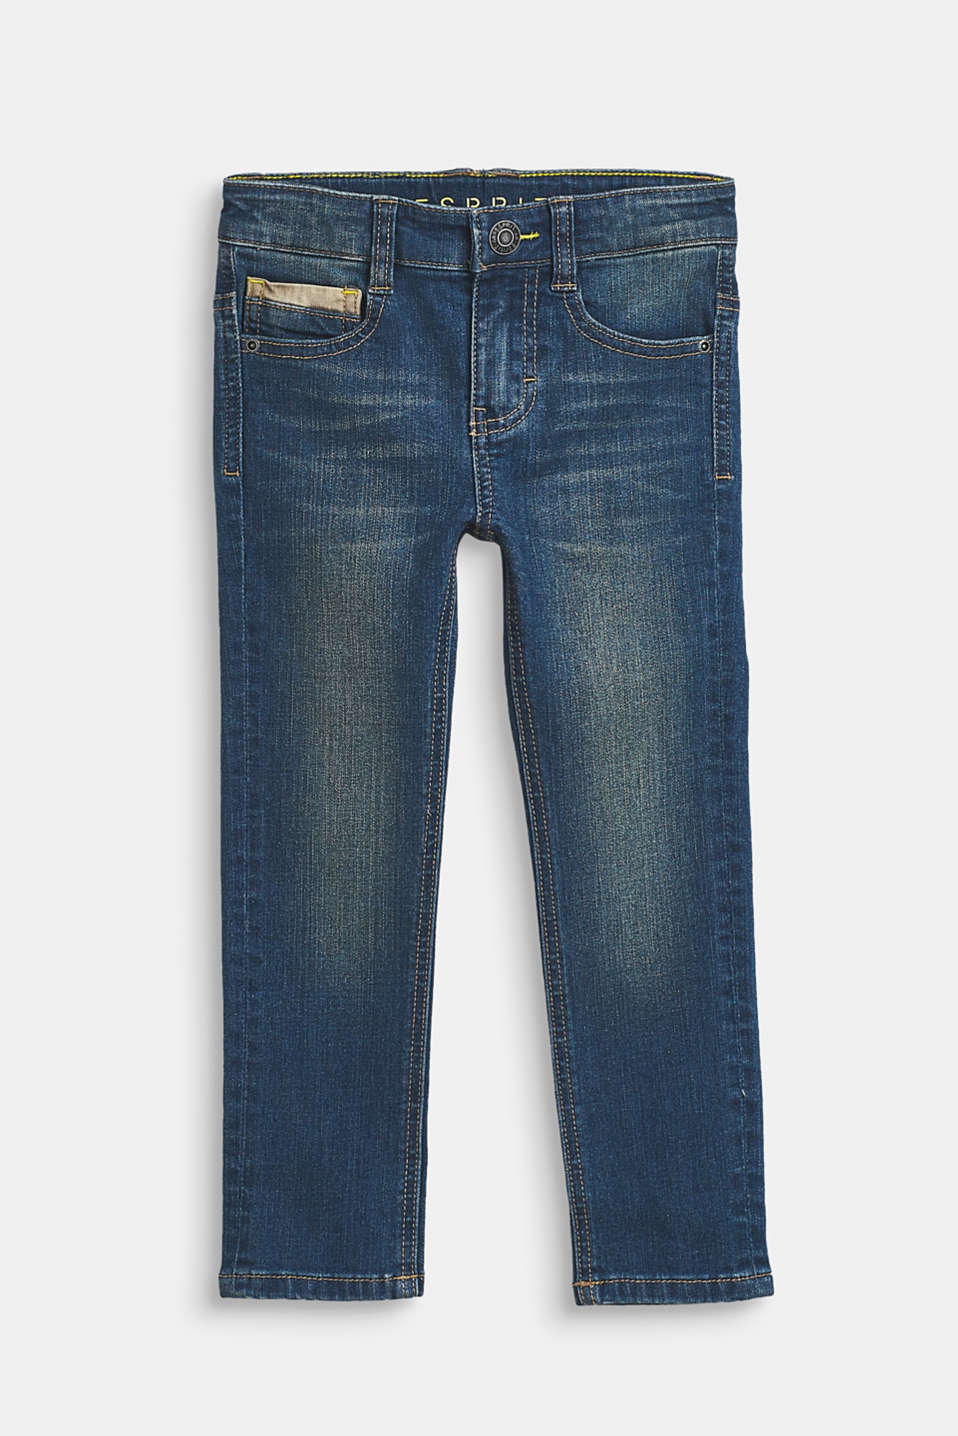 Esprit - Washed Stretch-Jeans mit Zier-Blenden